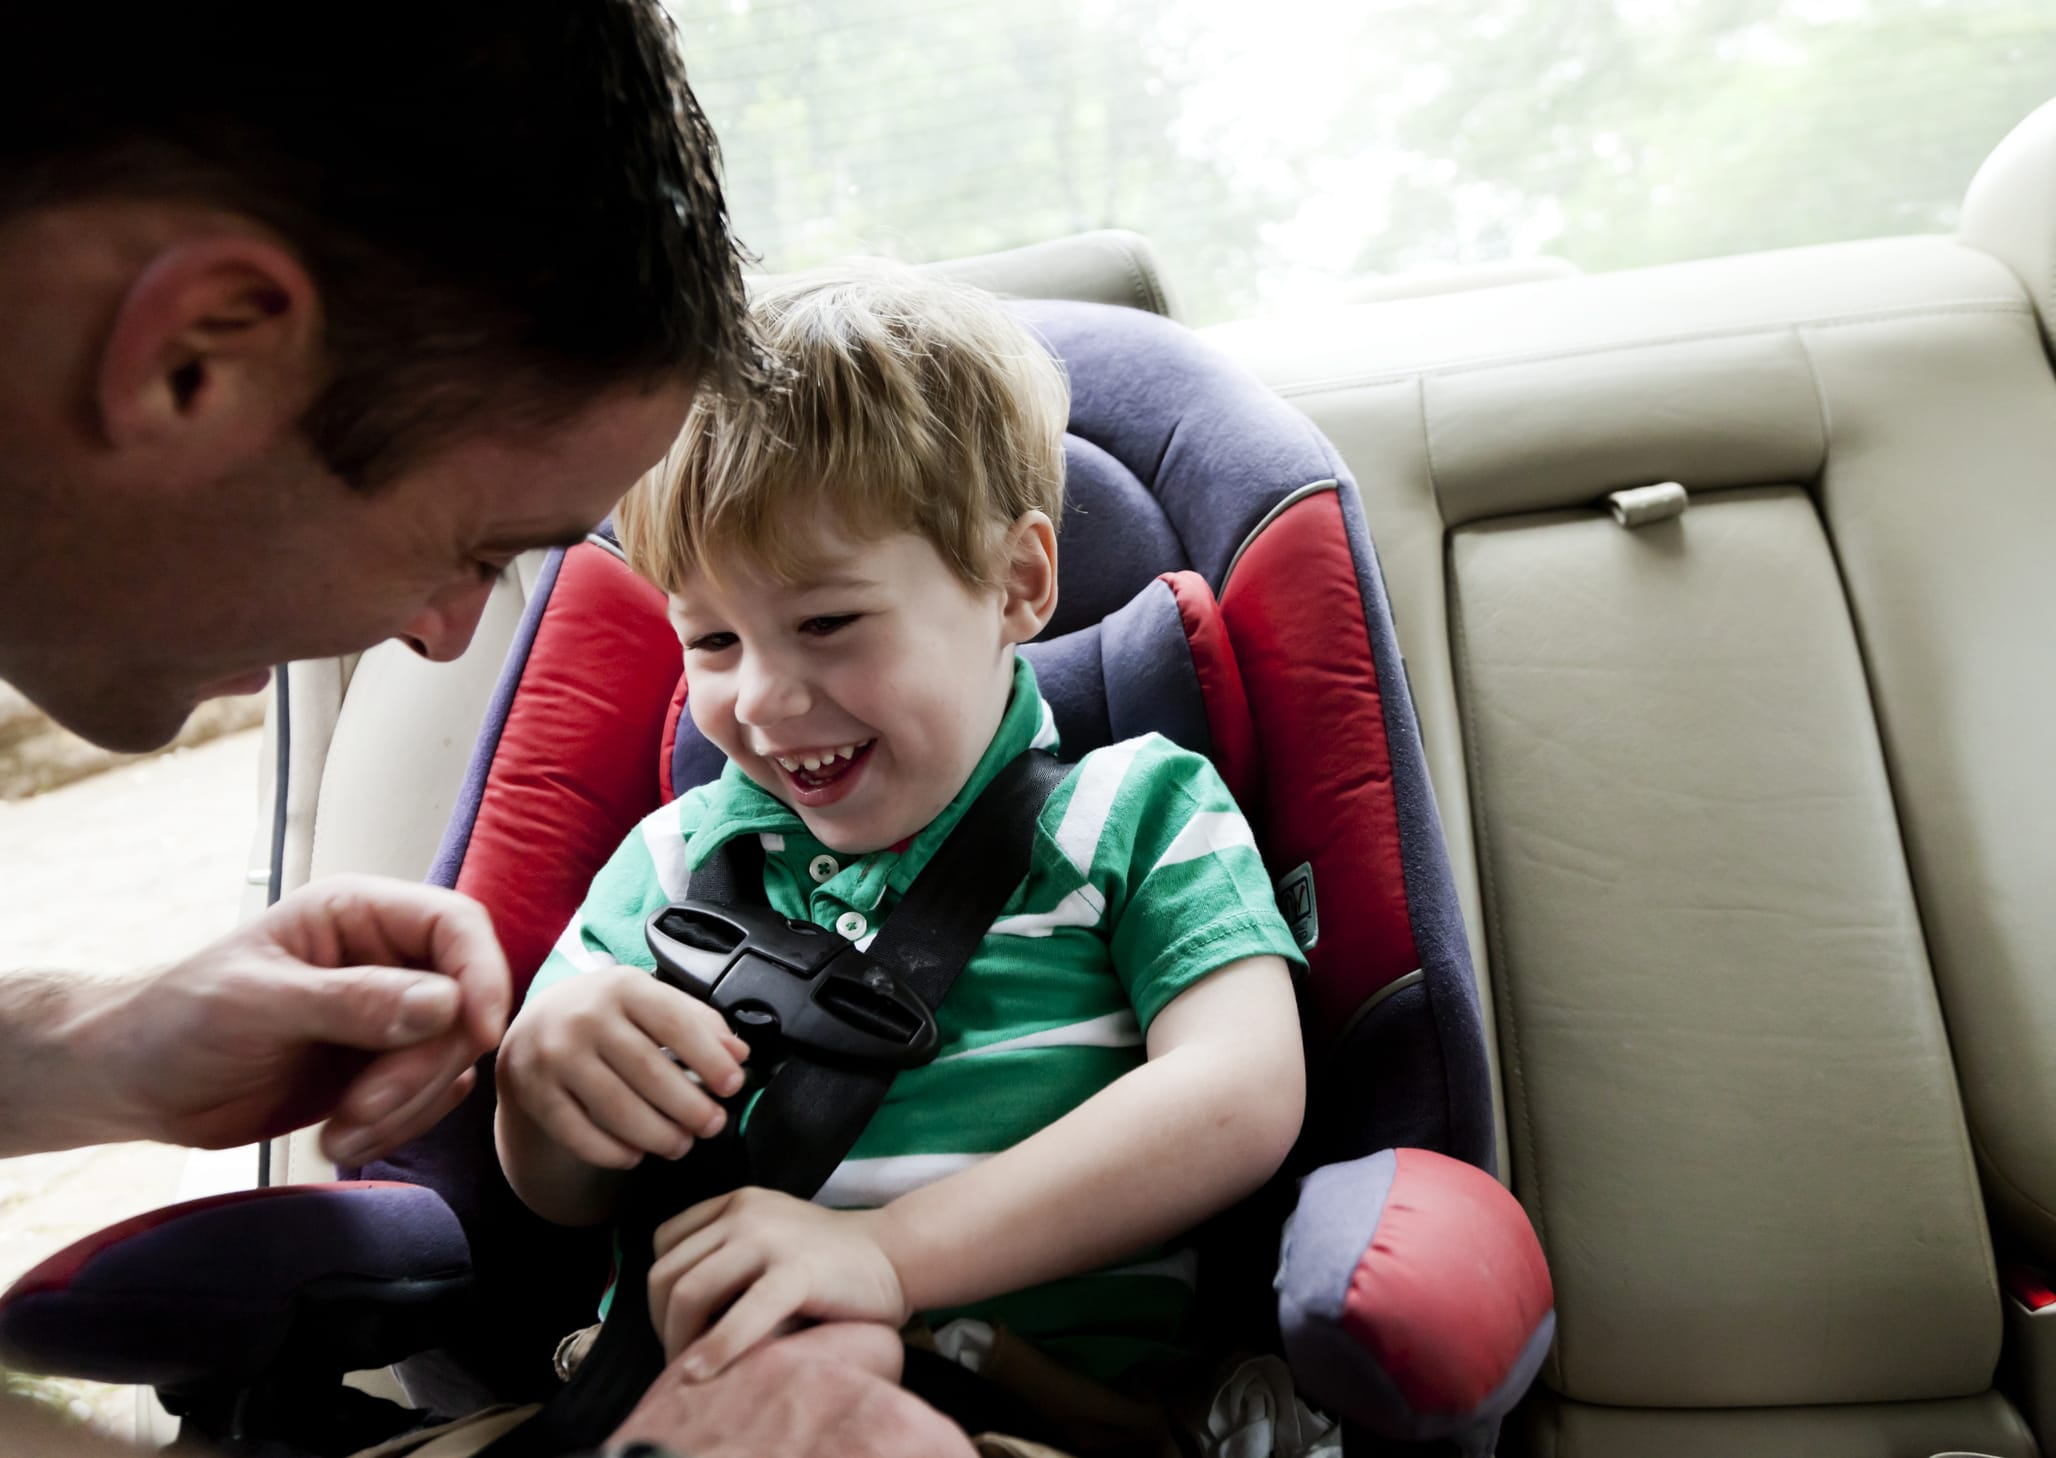 According To The American Academy Of Pediatrics Children Should Remain In Rear Facing Car Seats Until They Turn 2 Or Have Outgrown Seat Height And